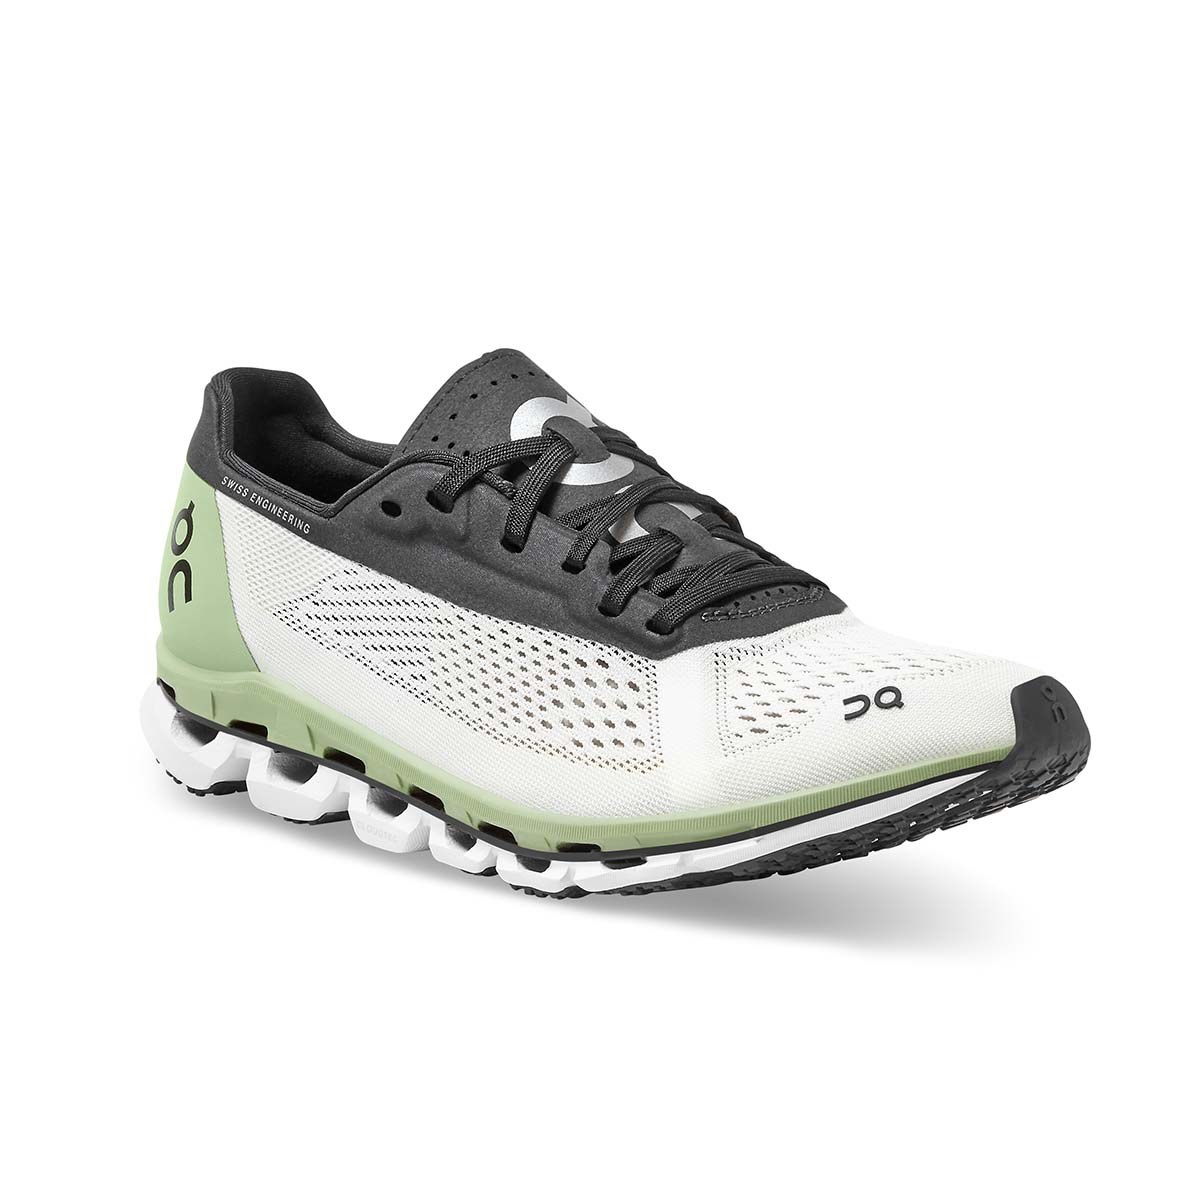 Women's On Cloudboom Running Shoe - Color: White/Black - Size: 5 - Width: Regular, White/Black, large, image 2